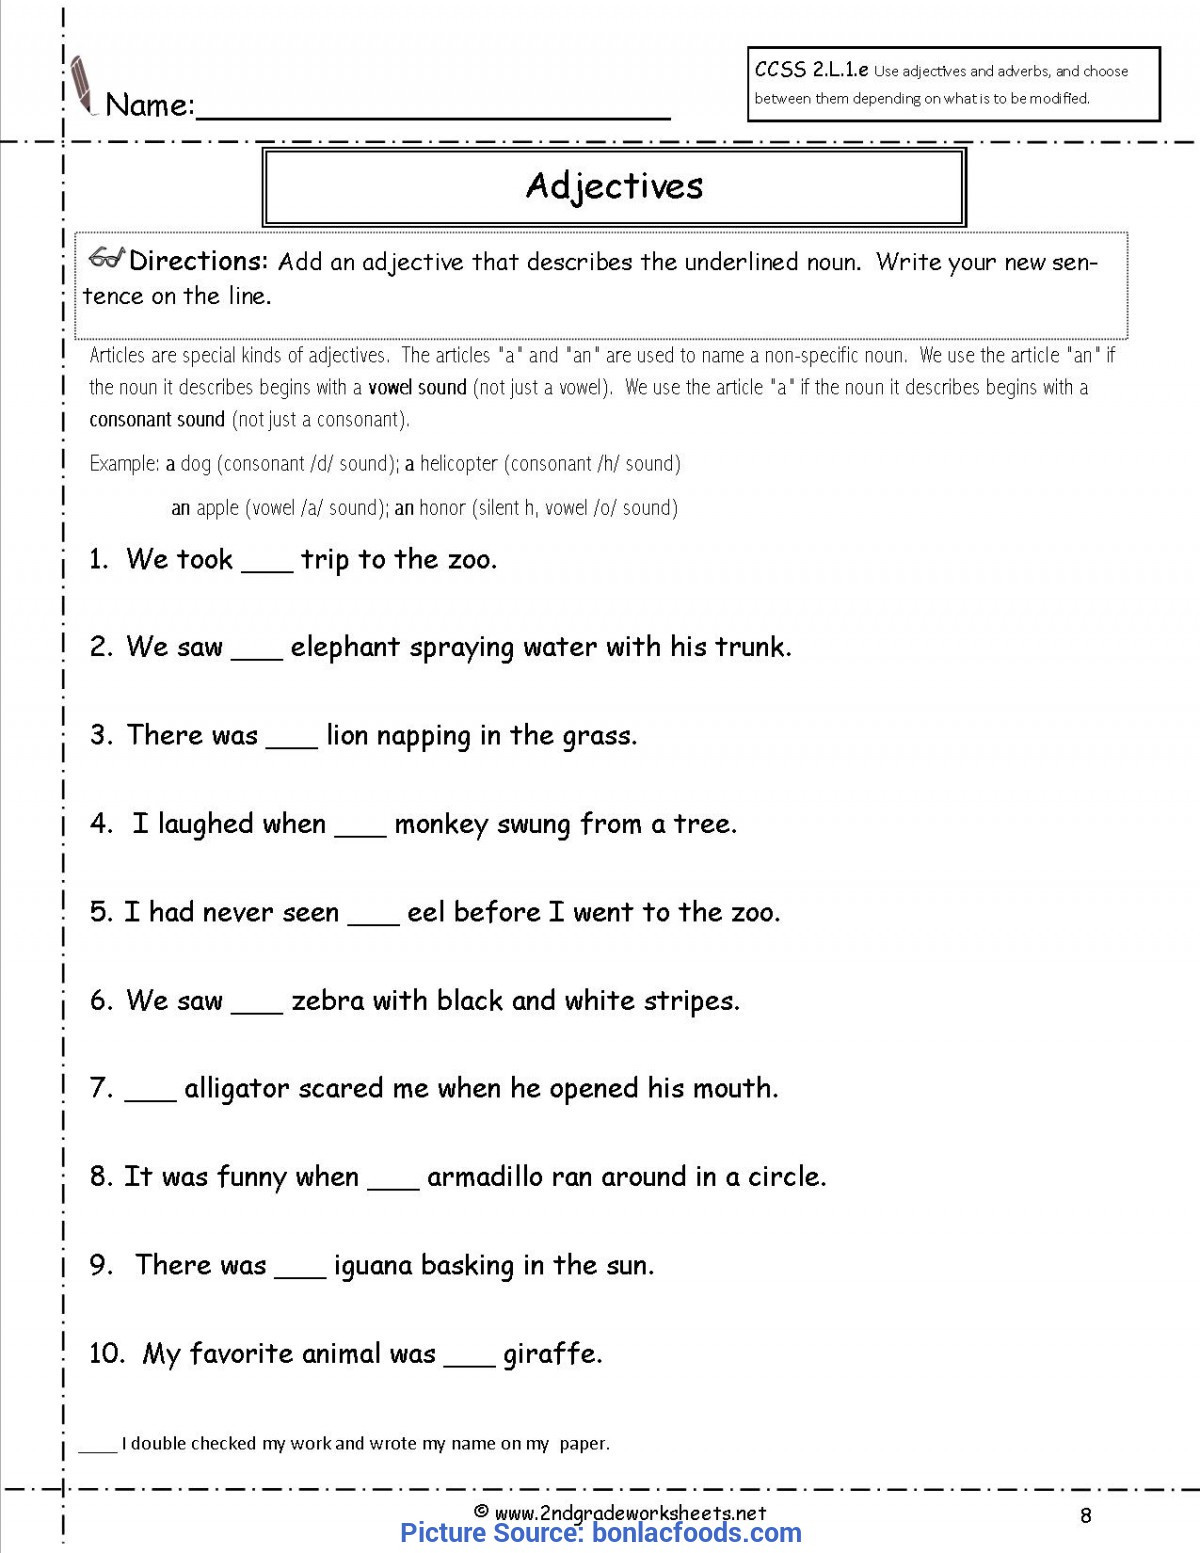 Adjectives Worksheets 3rd Grade Valuable 2nd Grade Lesson Plans Adjectives Worksheets for